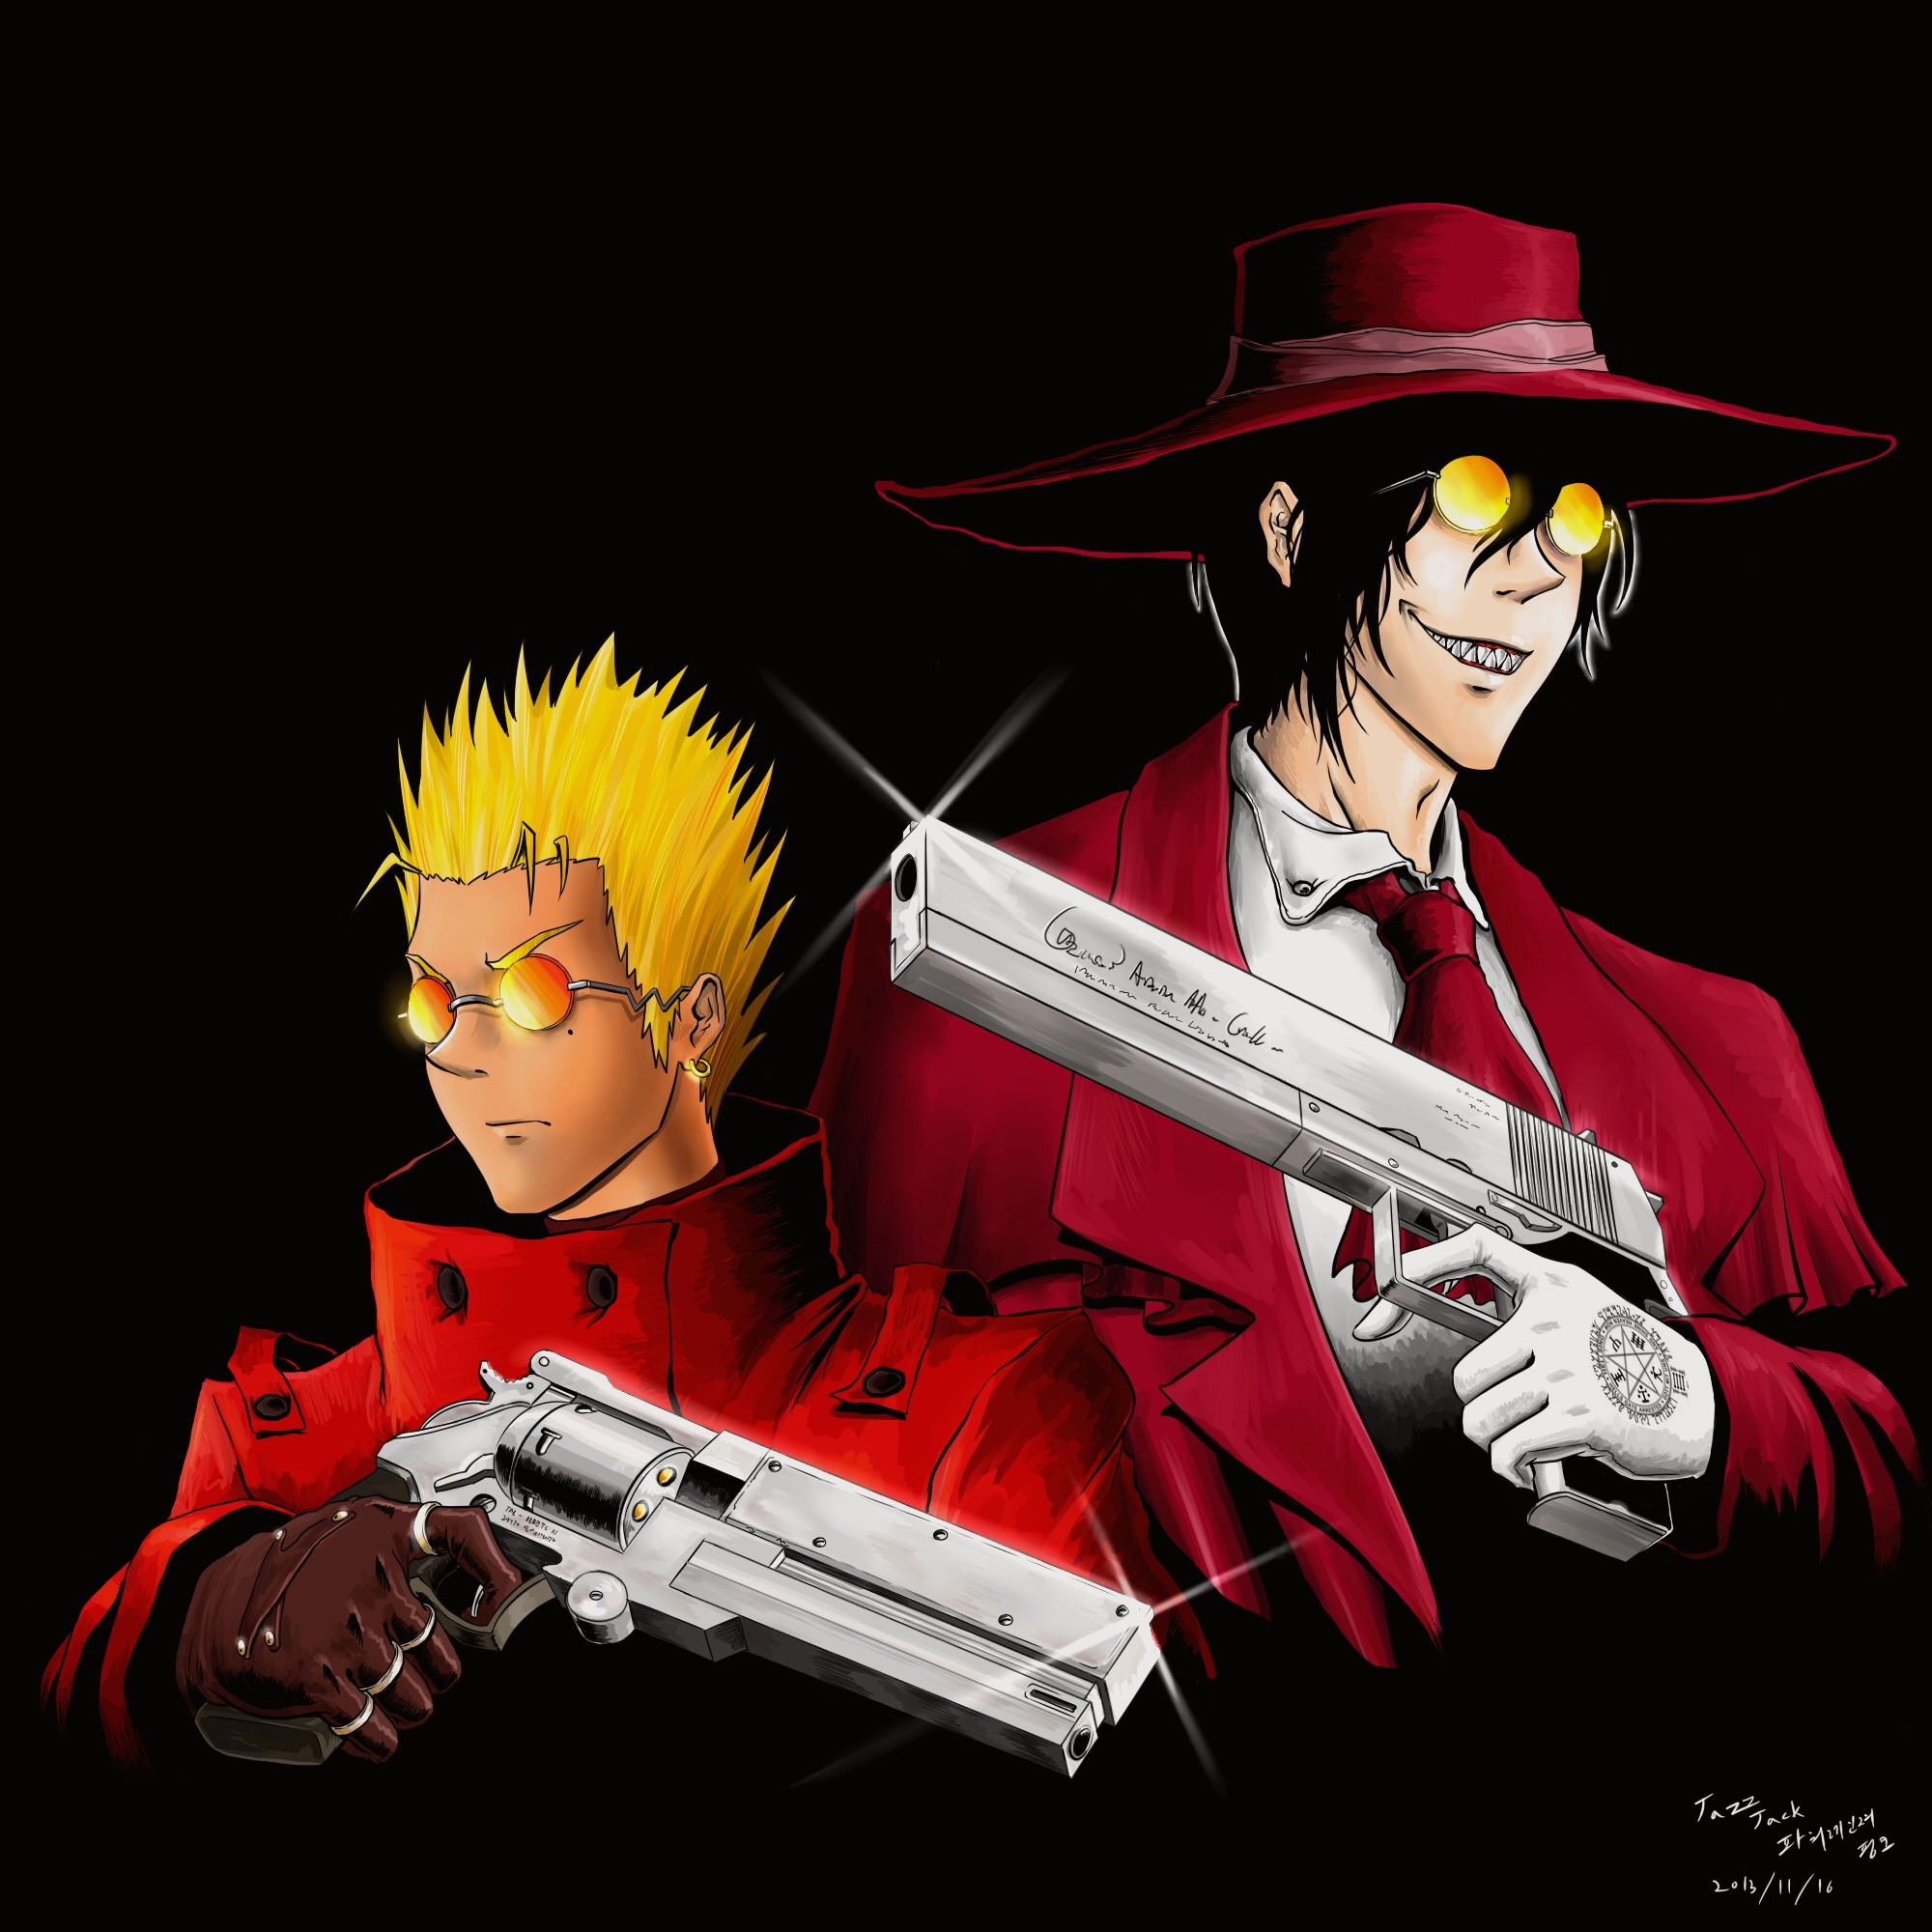 Trigun Wallpaper ·① Download Free Full HD Backgrounds For